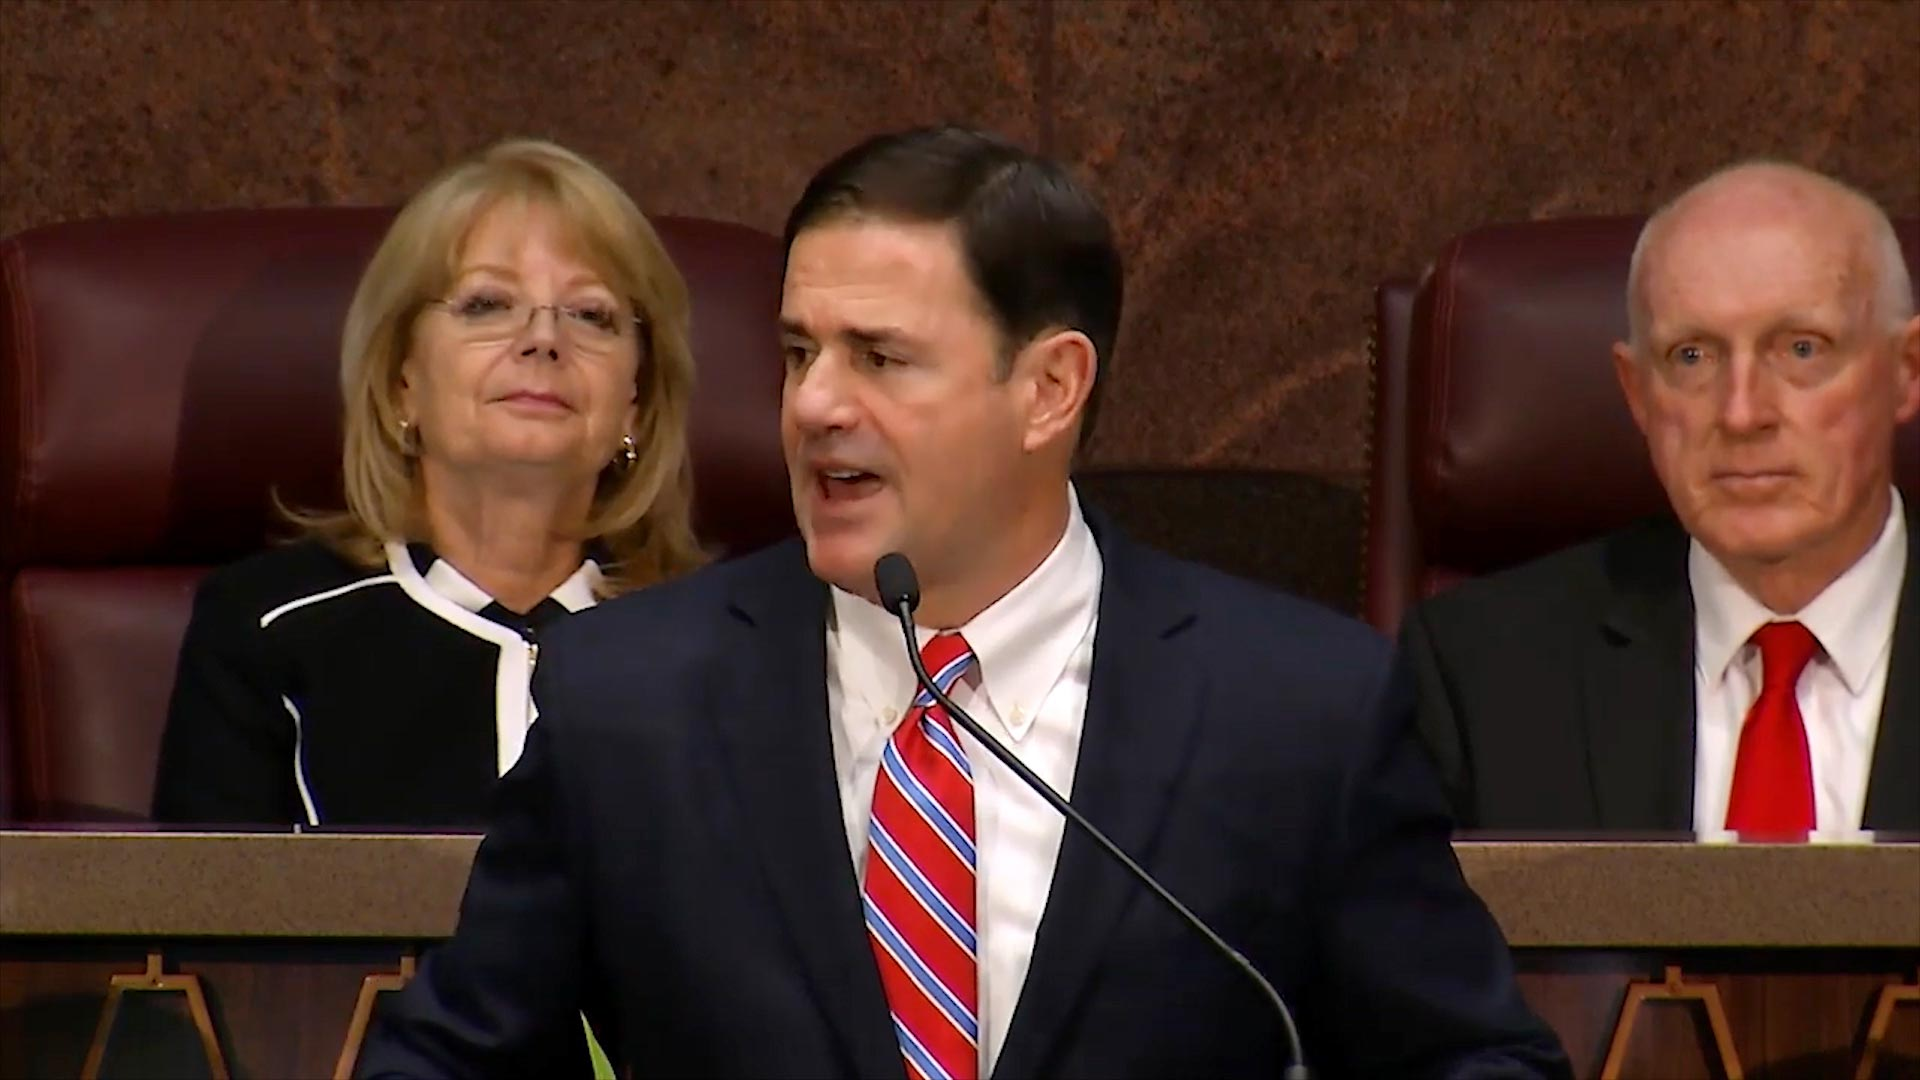 Republican Gov. Doug Ducey delivers his State of the State address at the State Capitol on January 14, 2019.